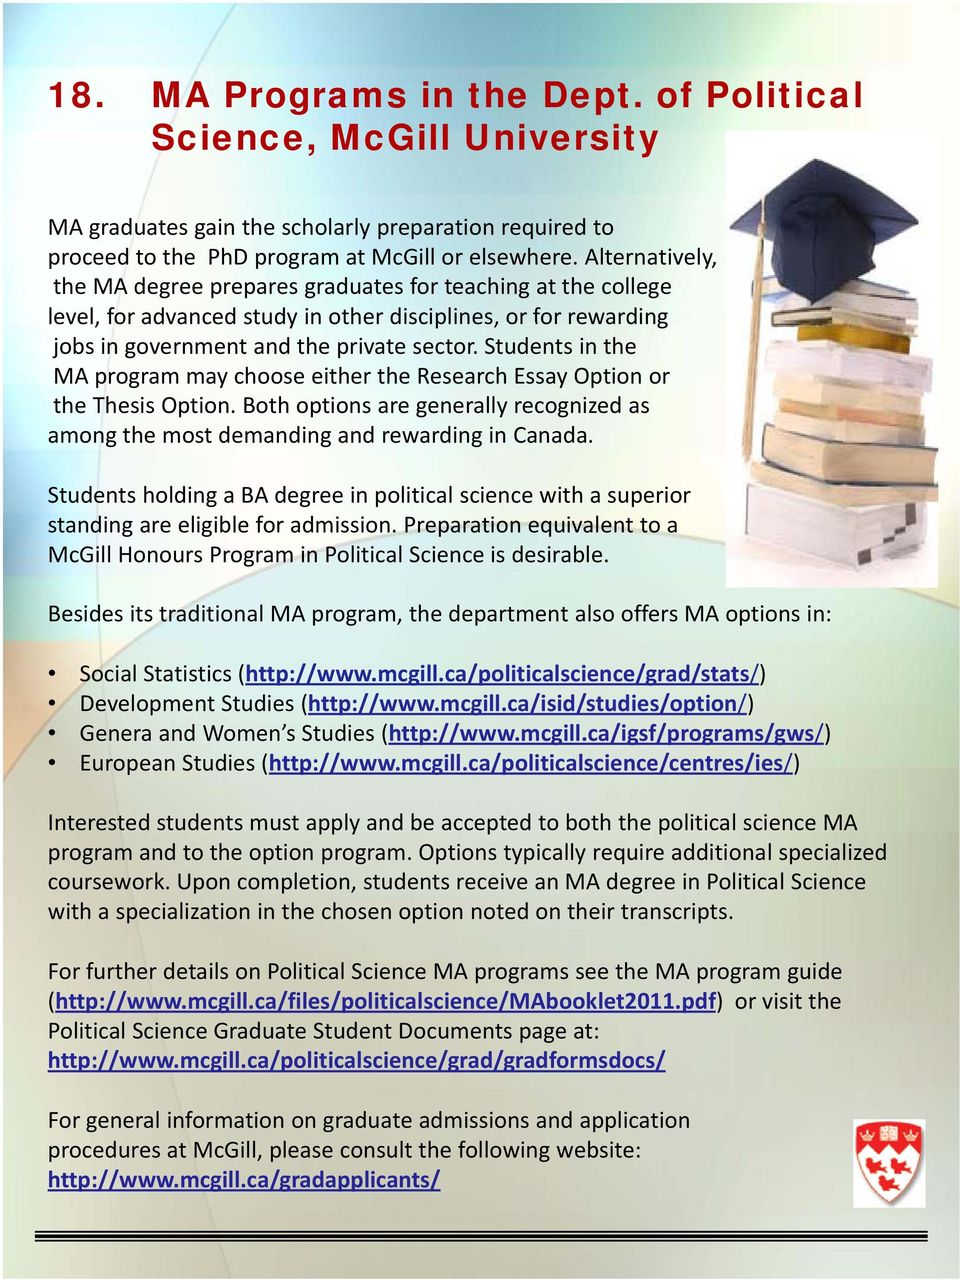 Students in the MA program may choose either the Research Essay Option or the Thesis Option. Both options are generally recognized as among the most demanding and rewarding in Canada.